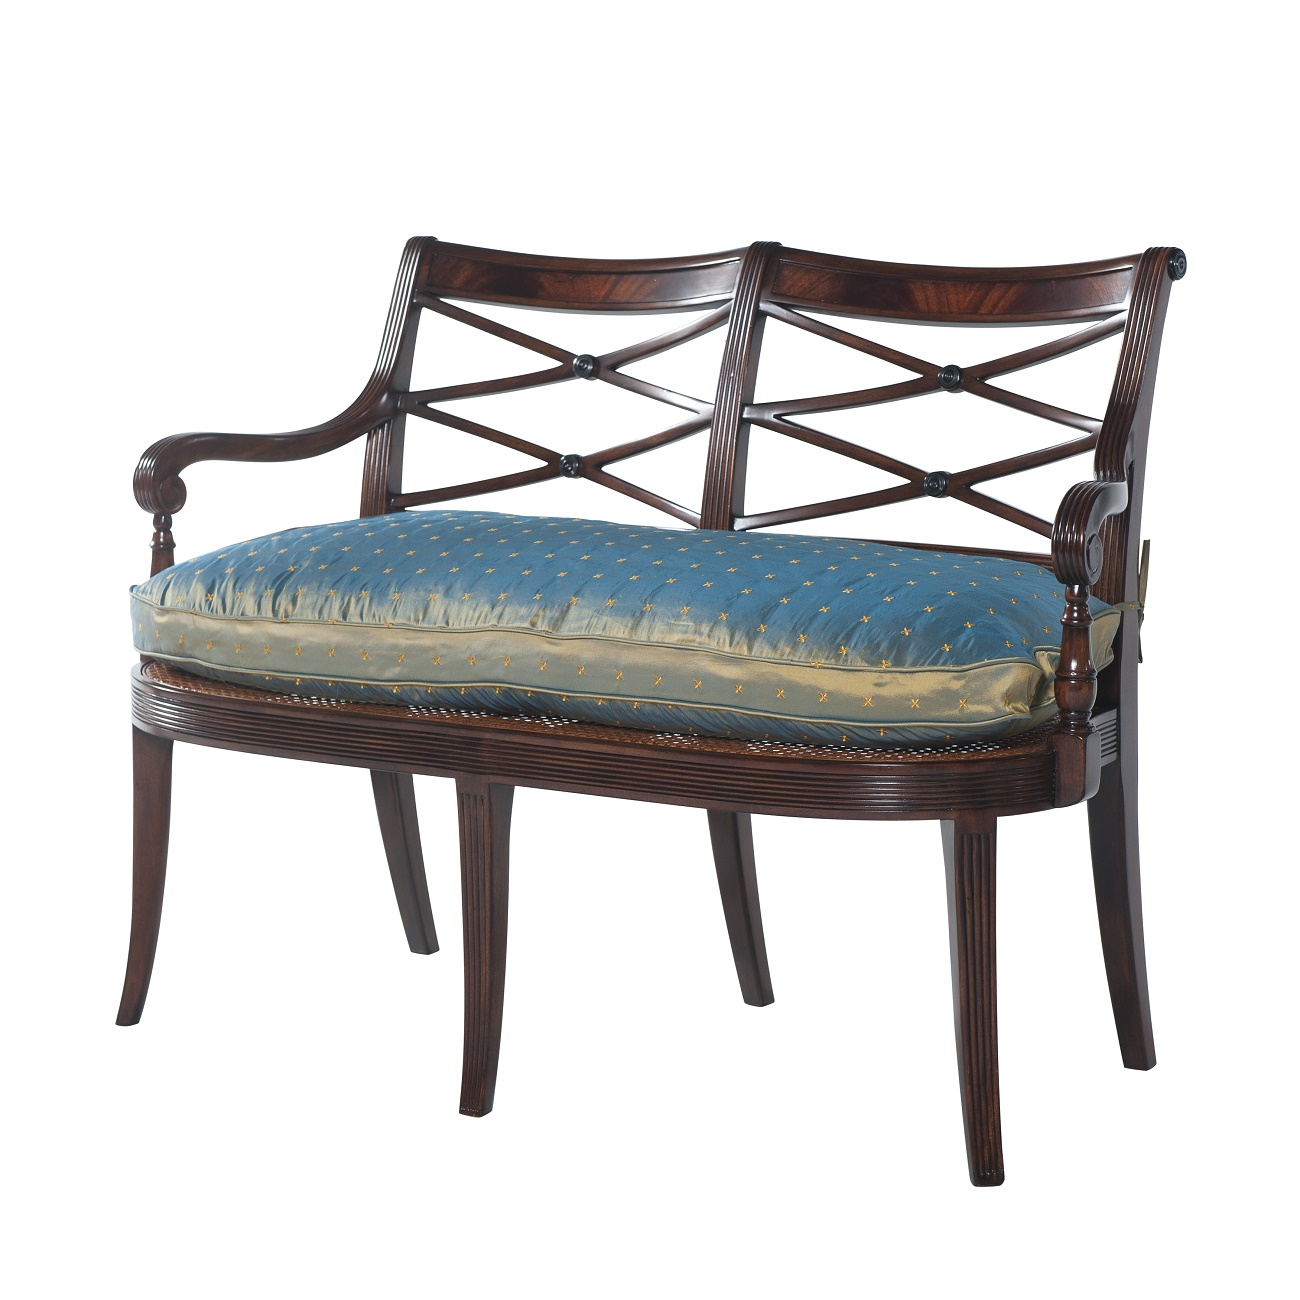 4500 038 Recollections From Hanover Square Sofa theodore alexander